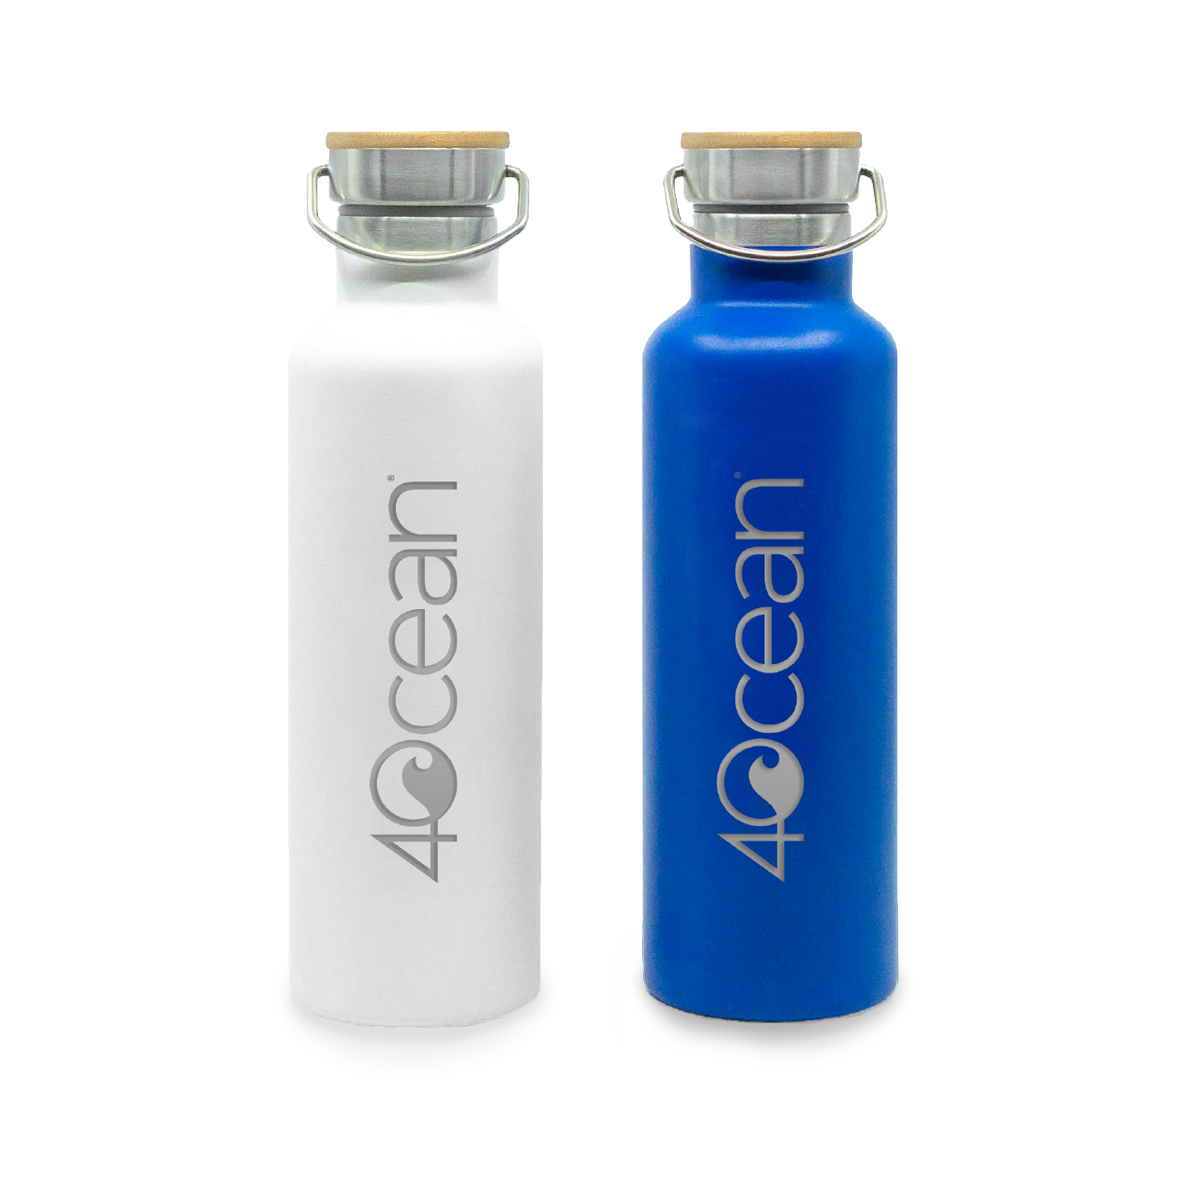 4ocean Reusable Water Bottle Comes in 4ocean Blue or White